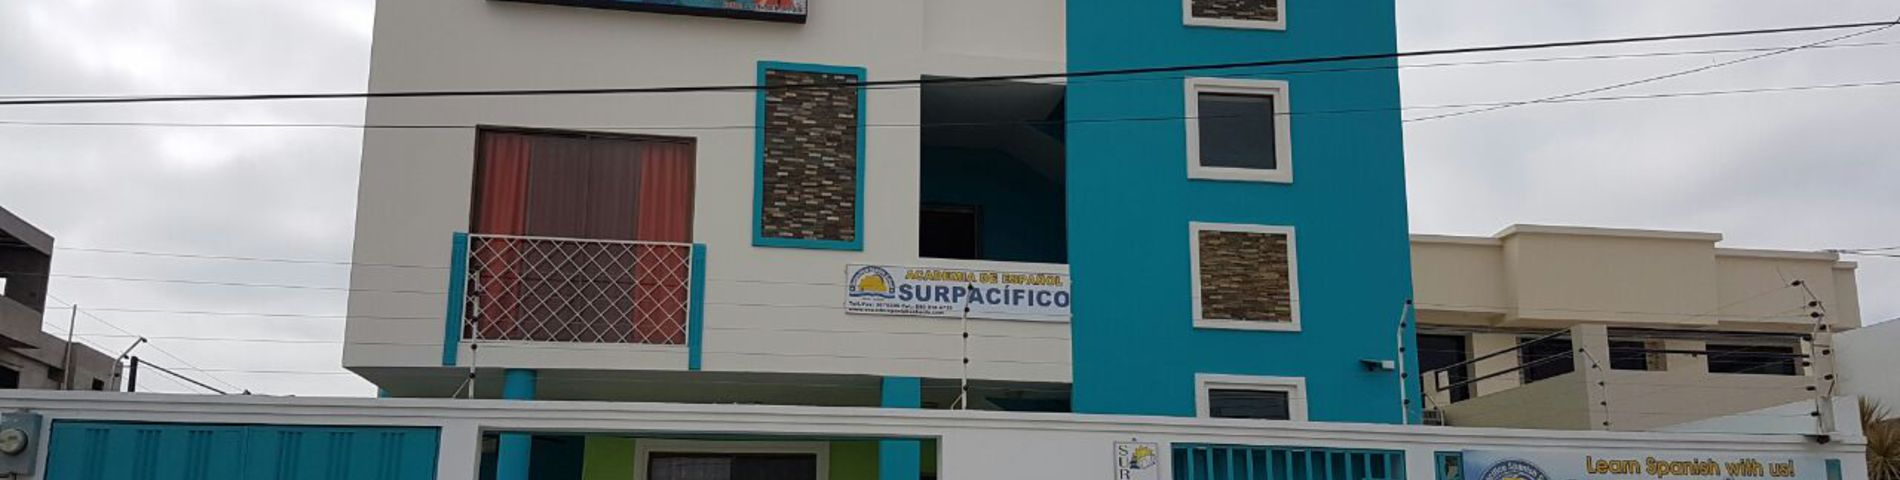 Academia Surpacifico Bild 1